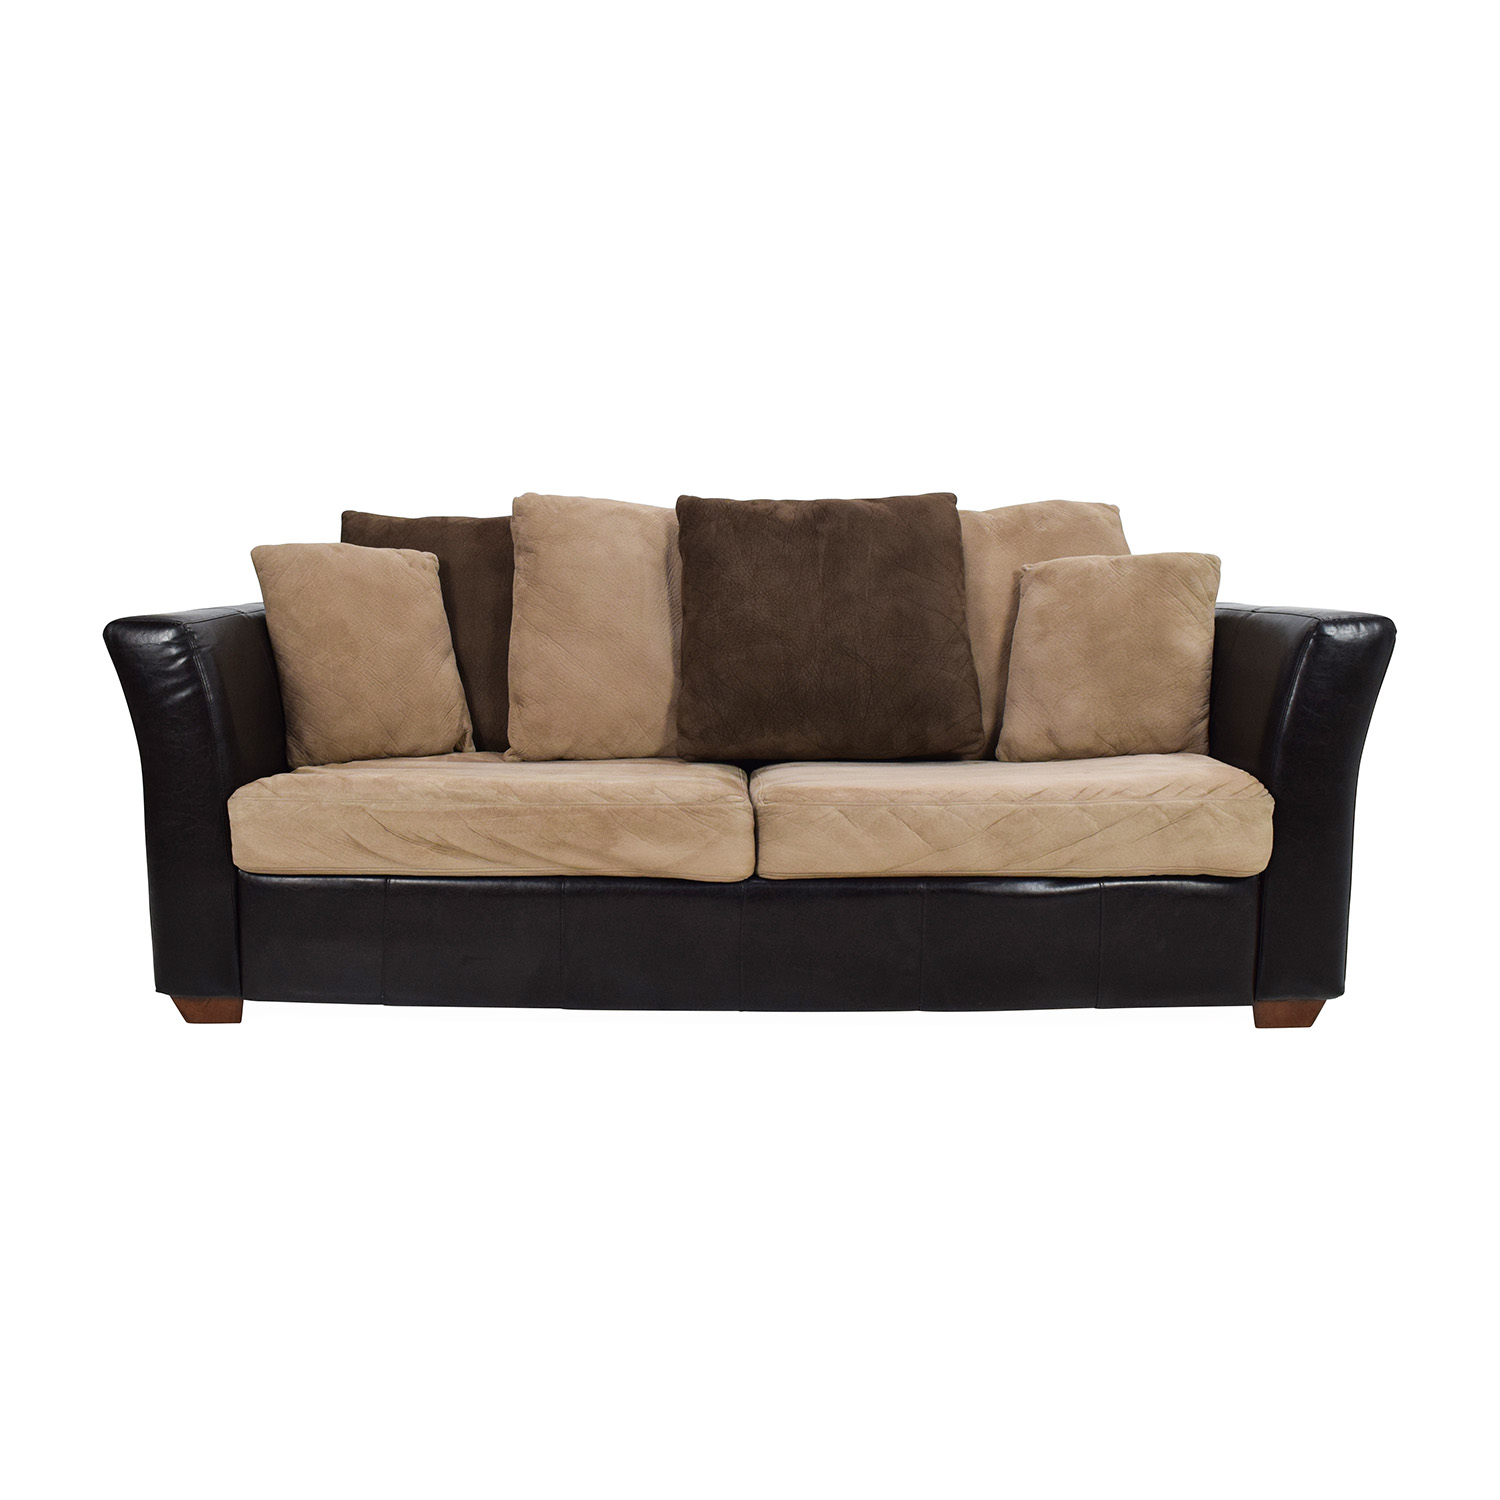 jennifer convertible sofas on sale sofa bed made in malaysia second hand convertibles for autos post